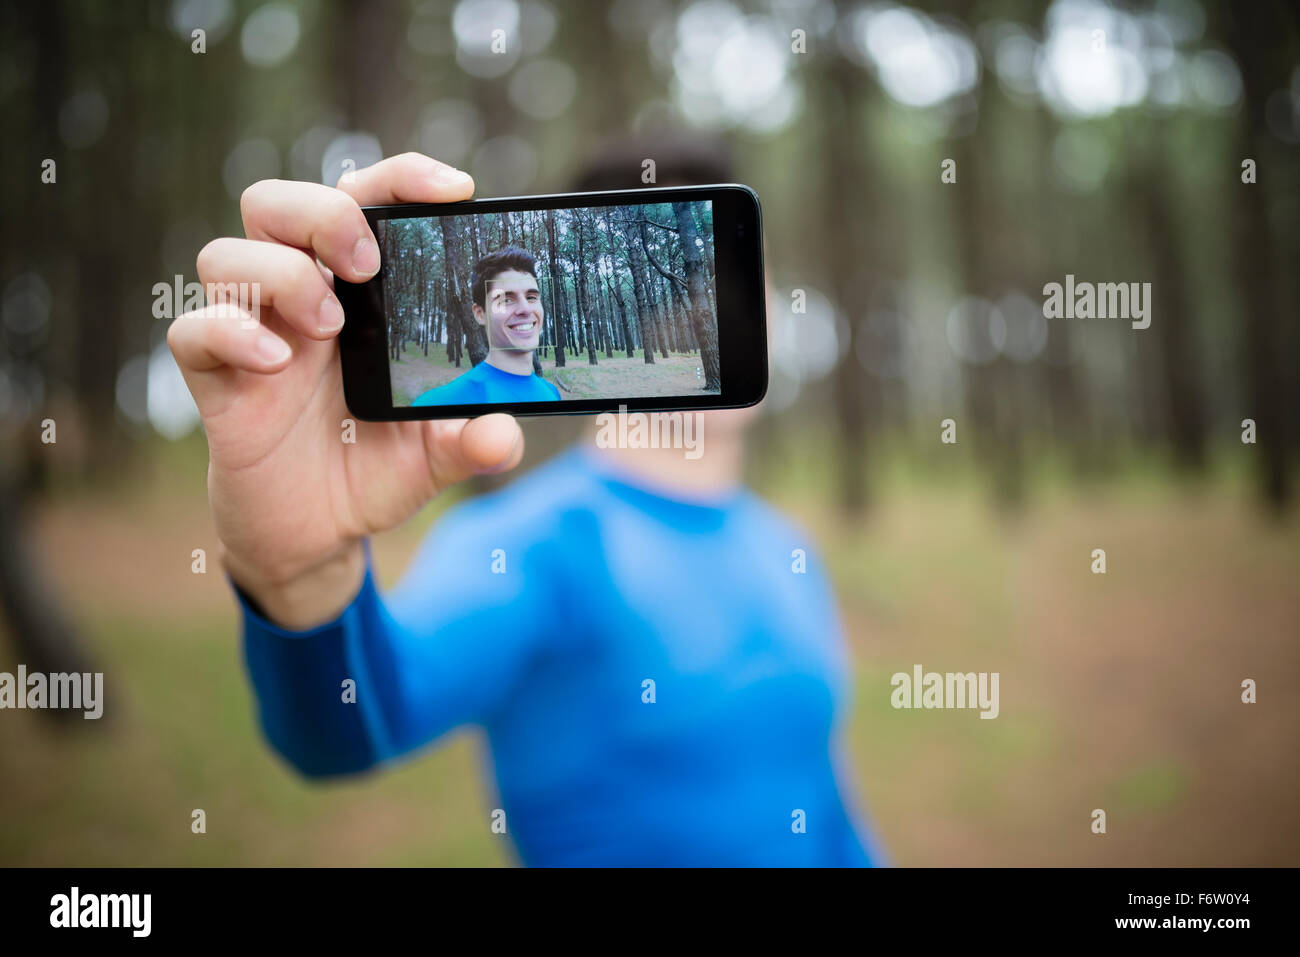 Selfie of a runner on the display of a smartphone - Stock Image